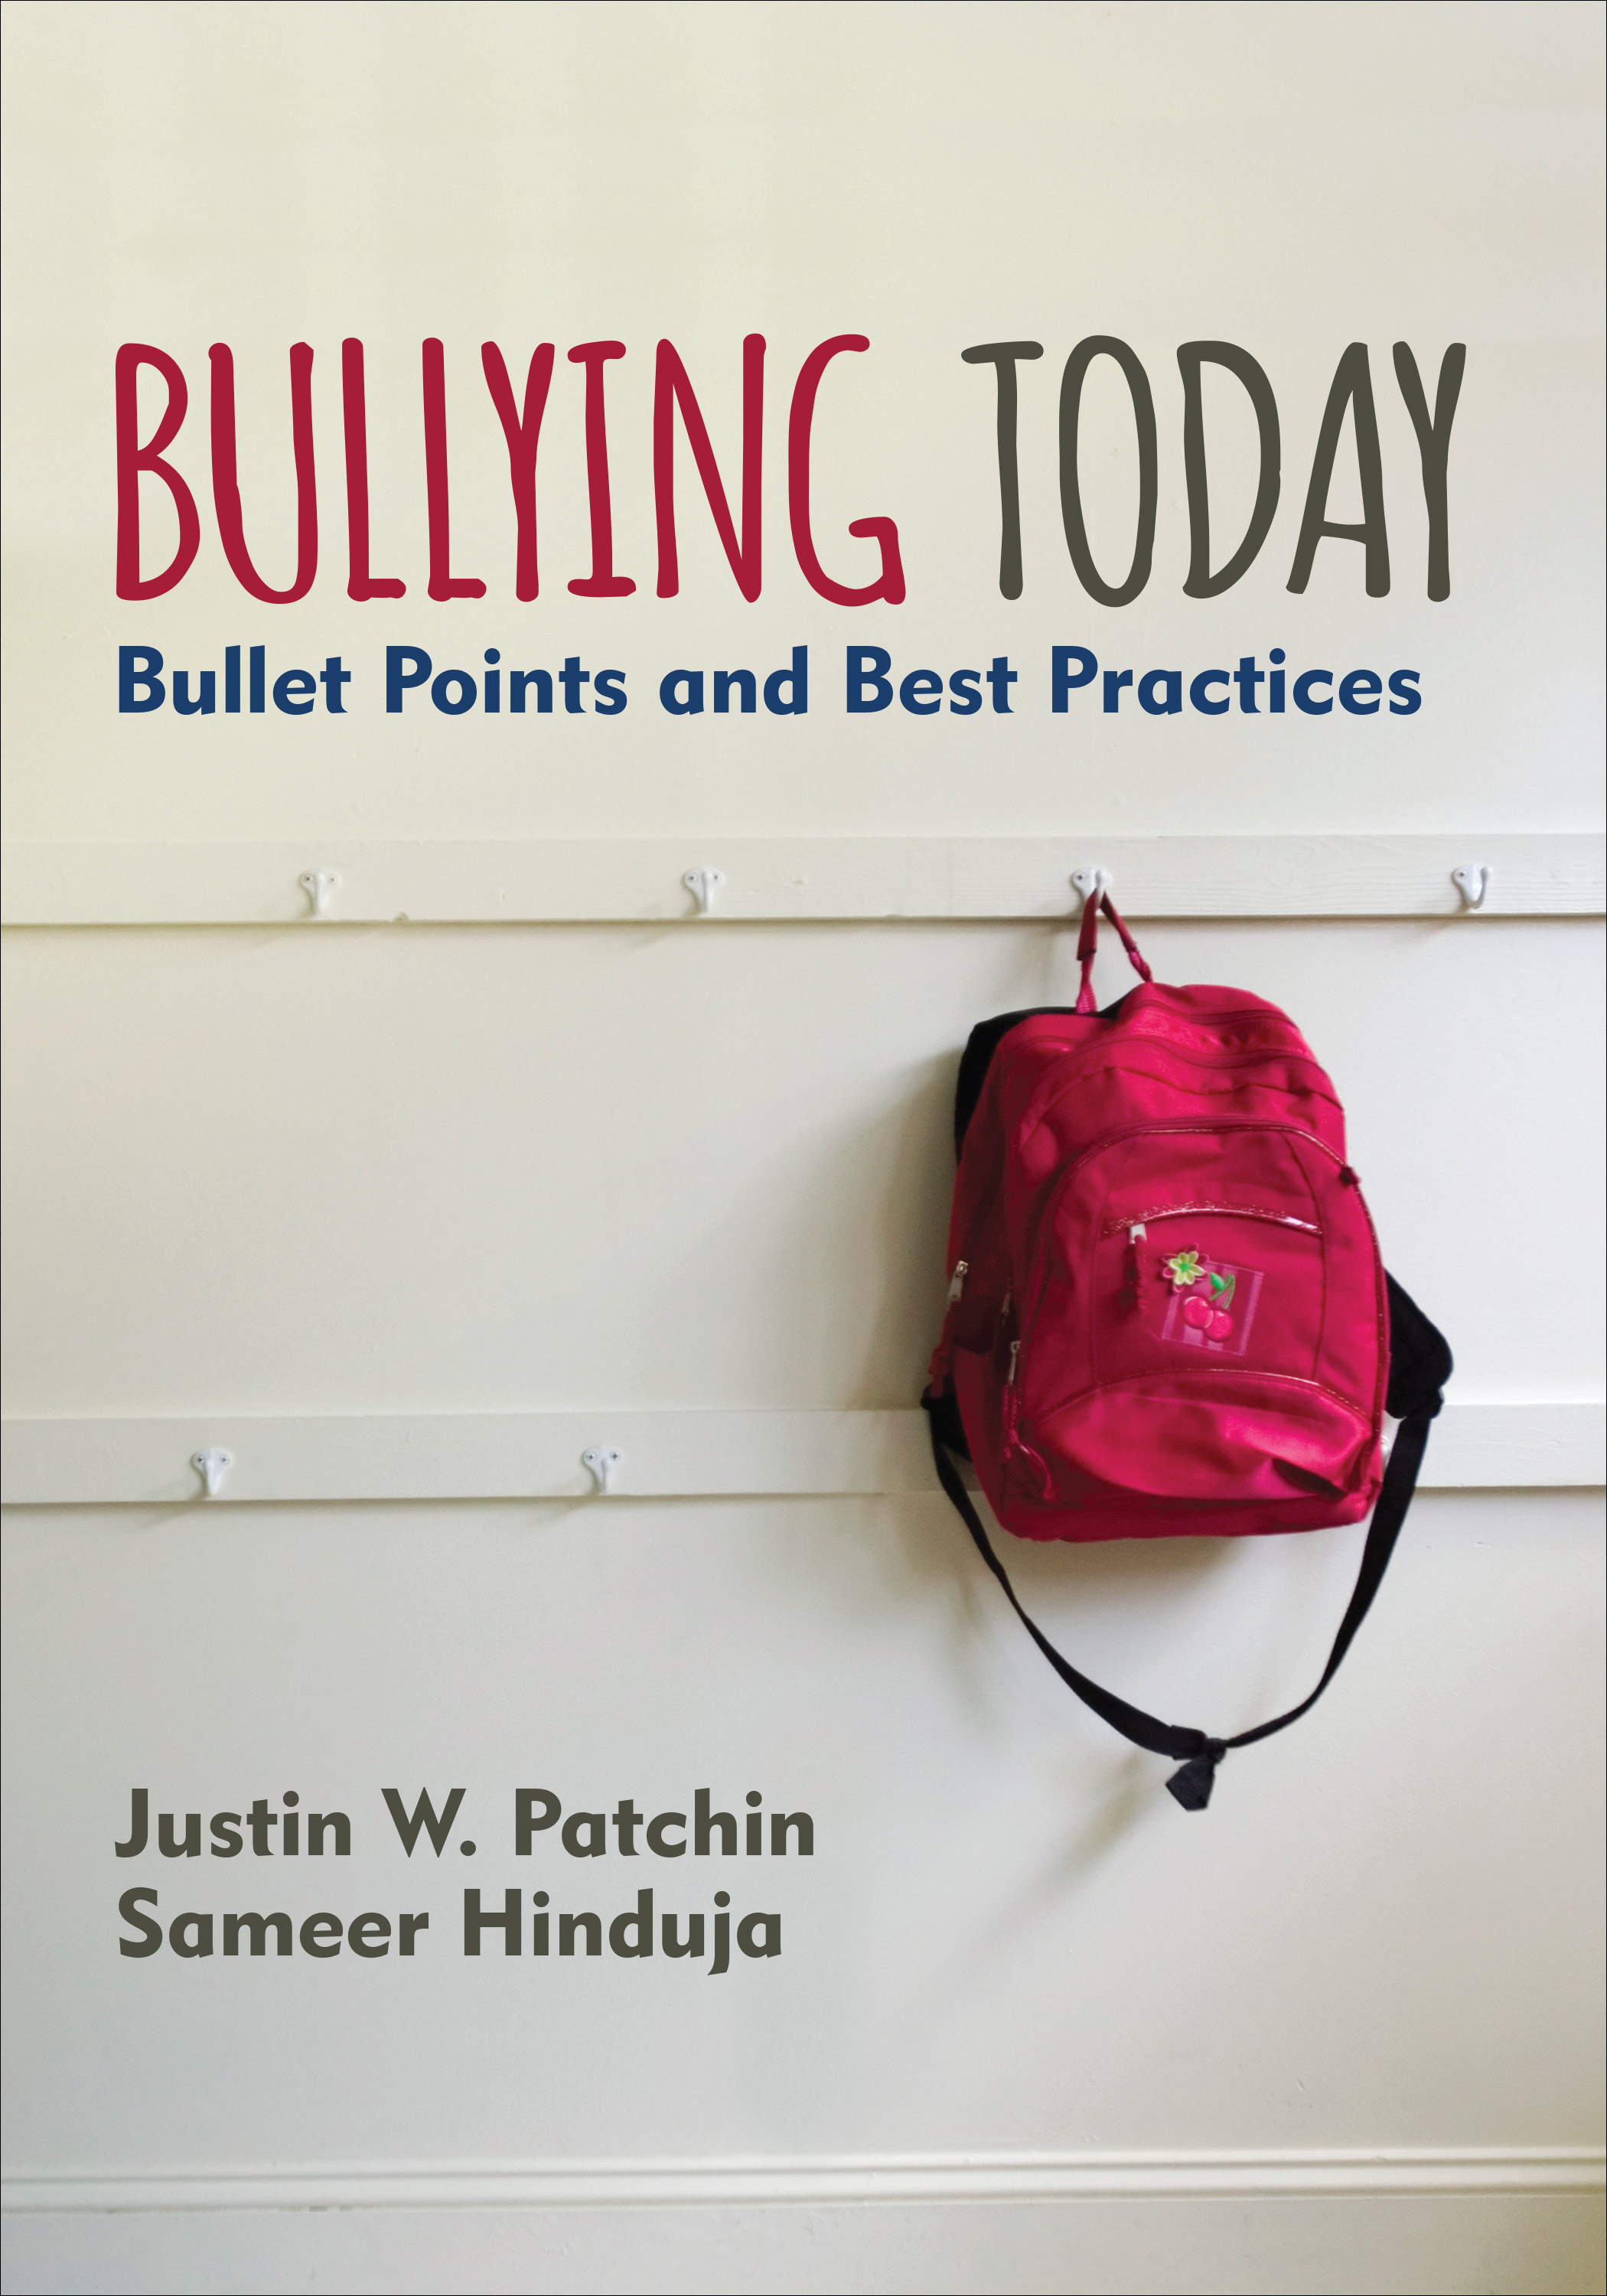 Bullying Today: Bullet Points and Best Practices Cyberbullying Research Center image 2